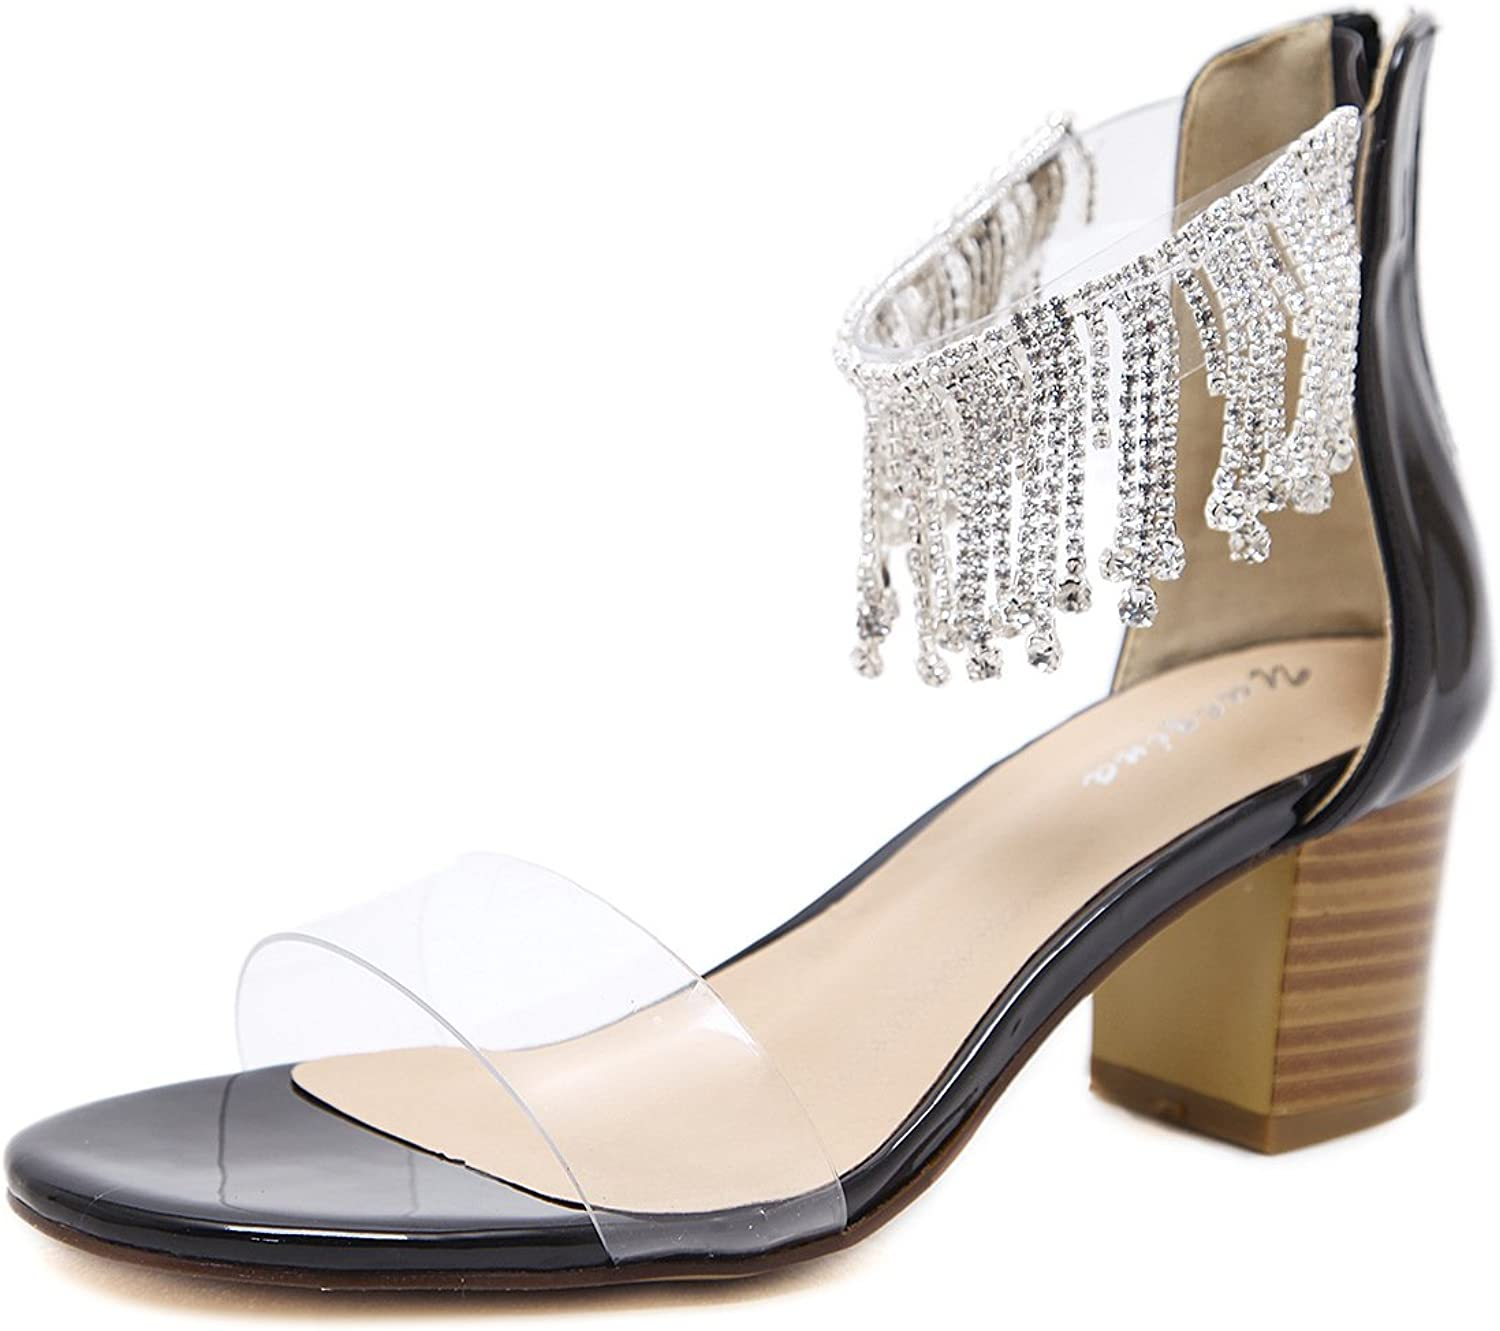 The New Spring and Summer high Heels Stylish Water Drilling Fish Mouth Sandals Thick with Transparent Film Women shoes